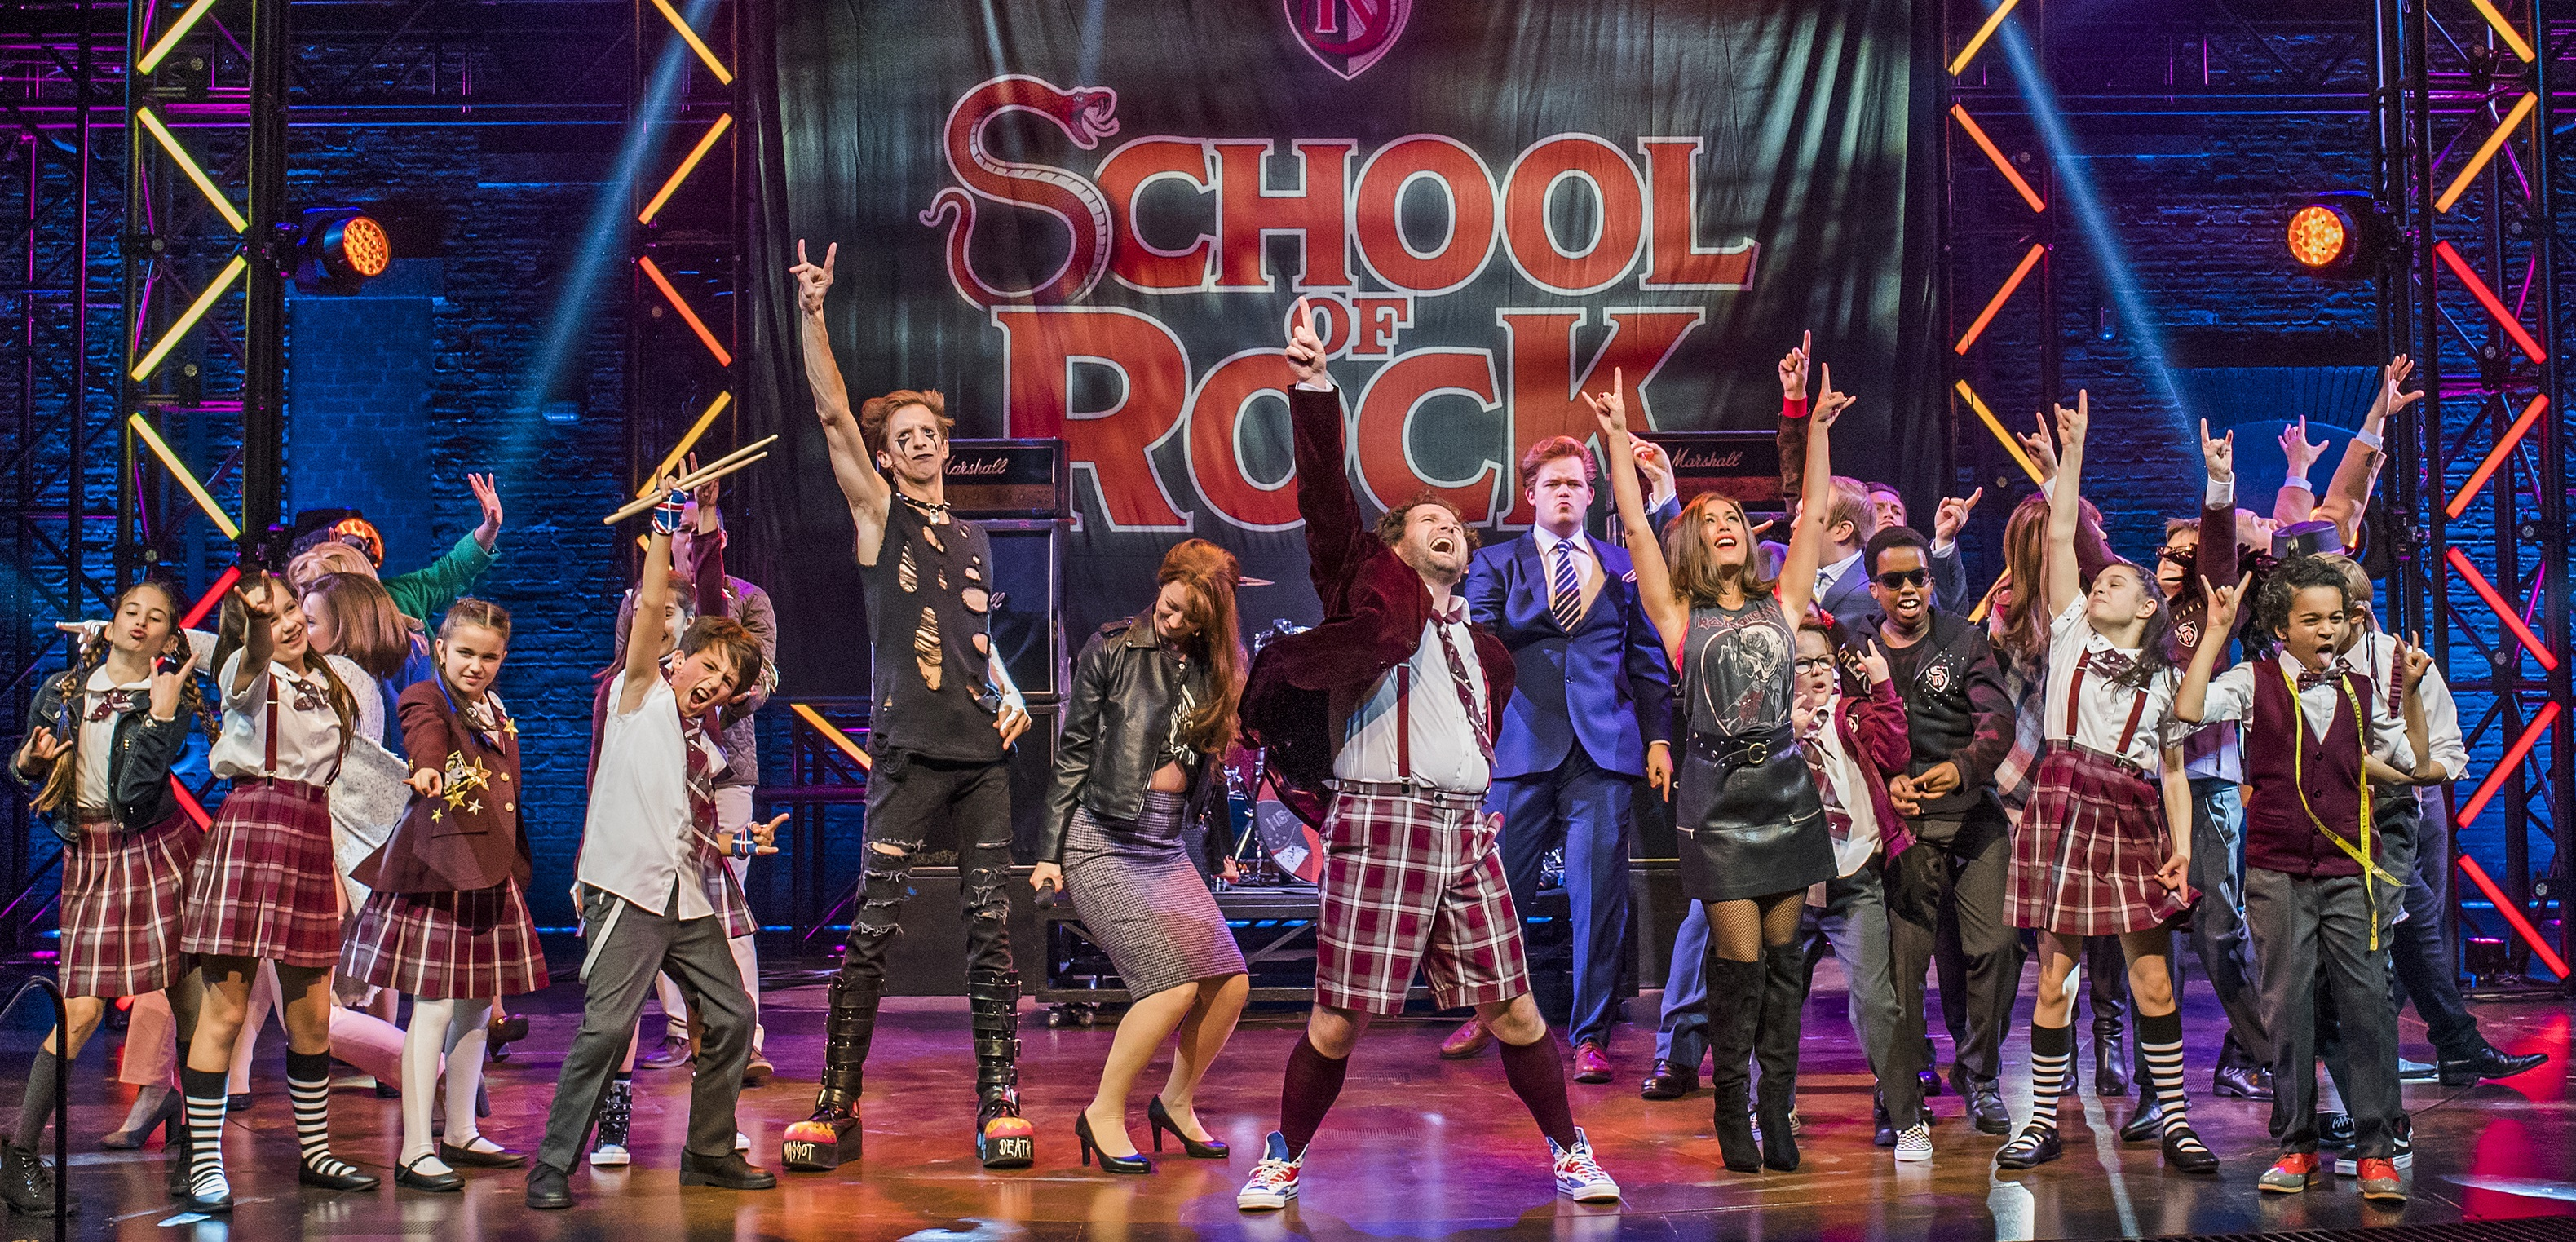 A scene from 'School of Rock' at the New London Theatre with the original London cast. The national touring company will play the Benedum as part of the PNC Broadway in Pittsburgh series. Photo by Tristram Kenton.